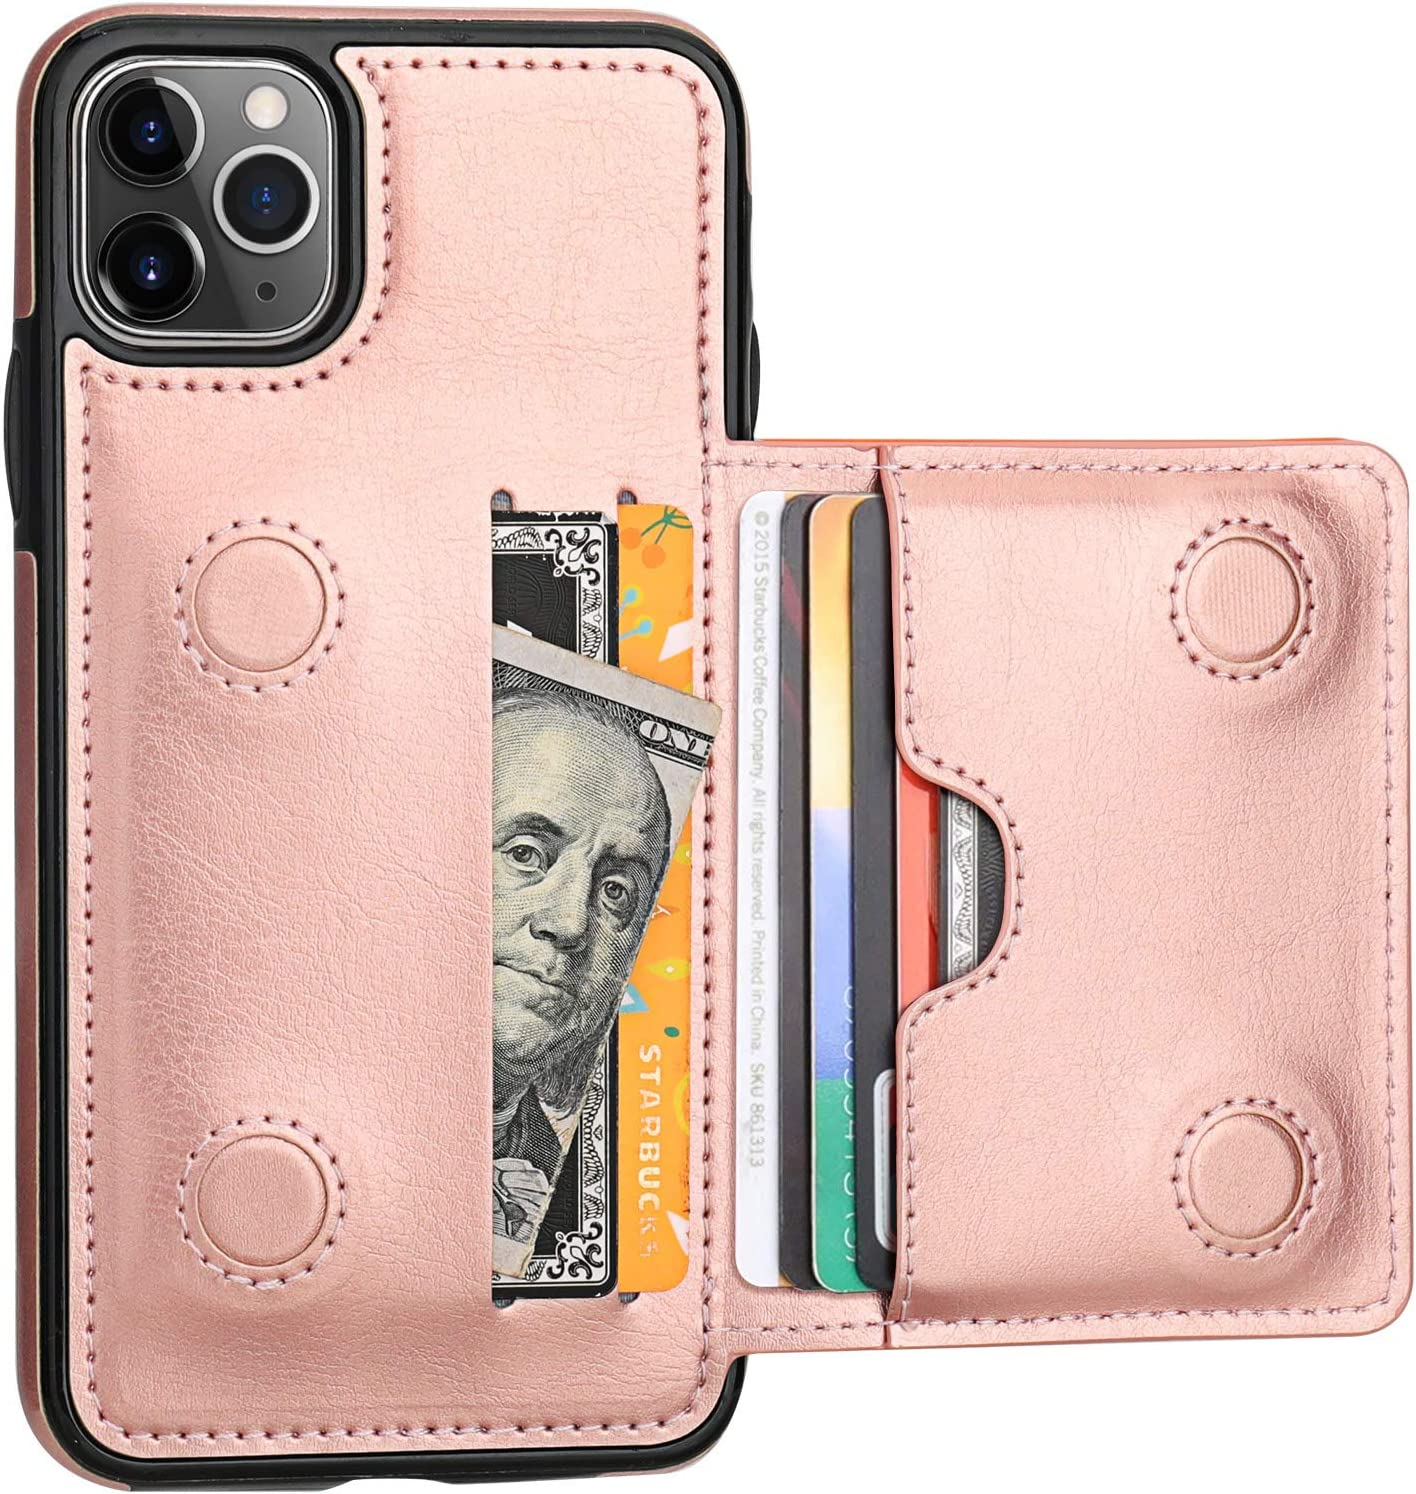 Pink Wallet Case for iPhone 11 Pro Leather Cover Compatible with iPhone 11 Pro